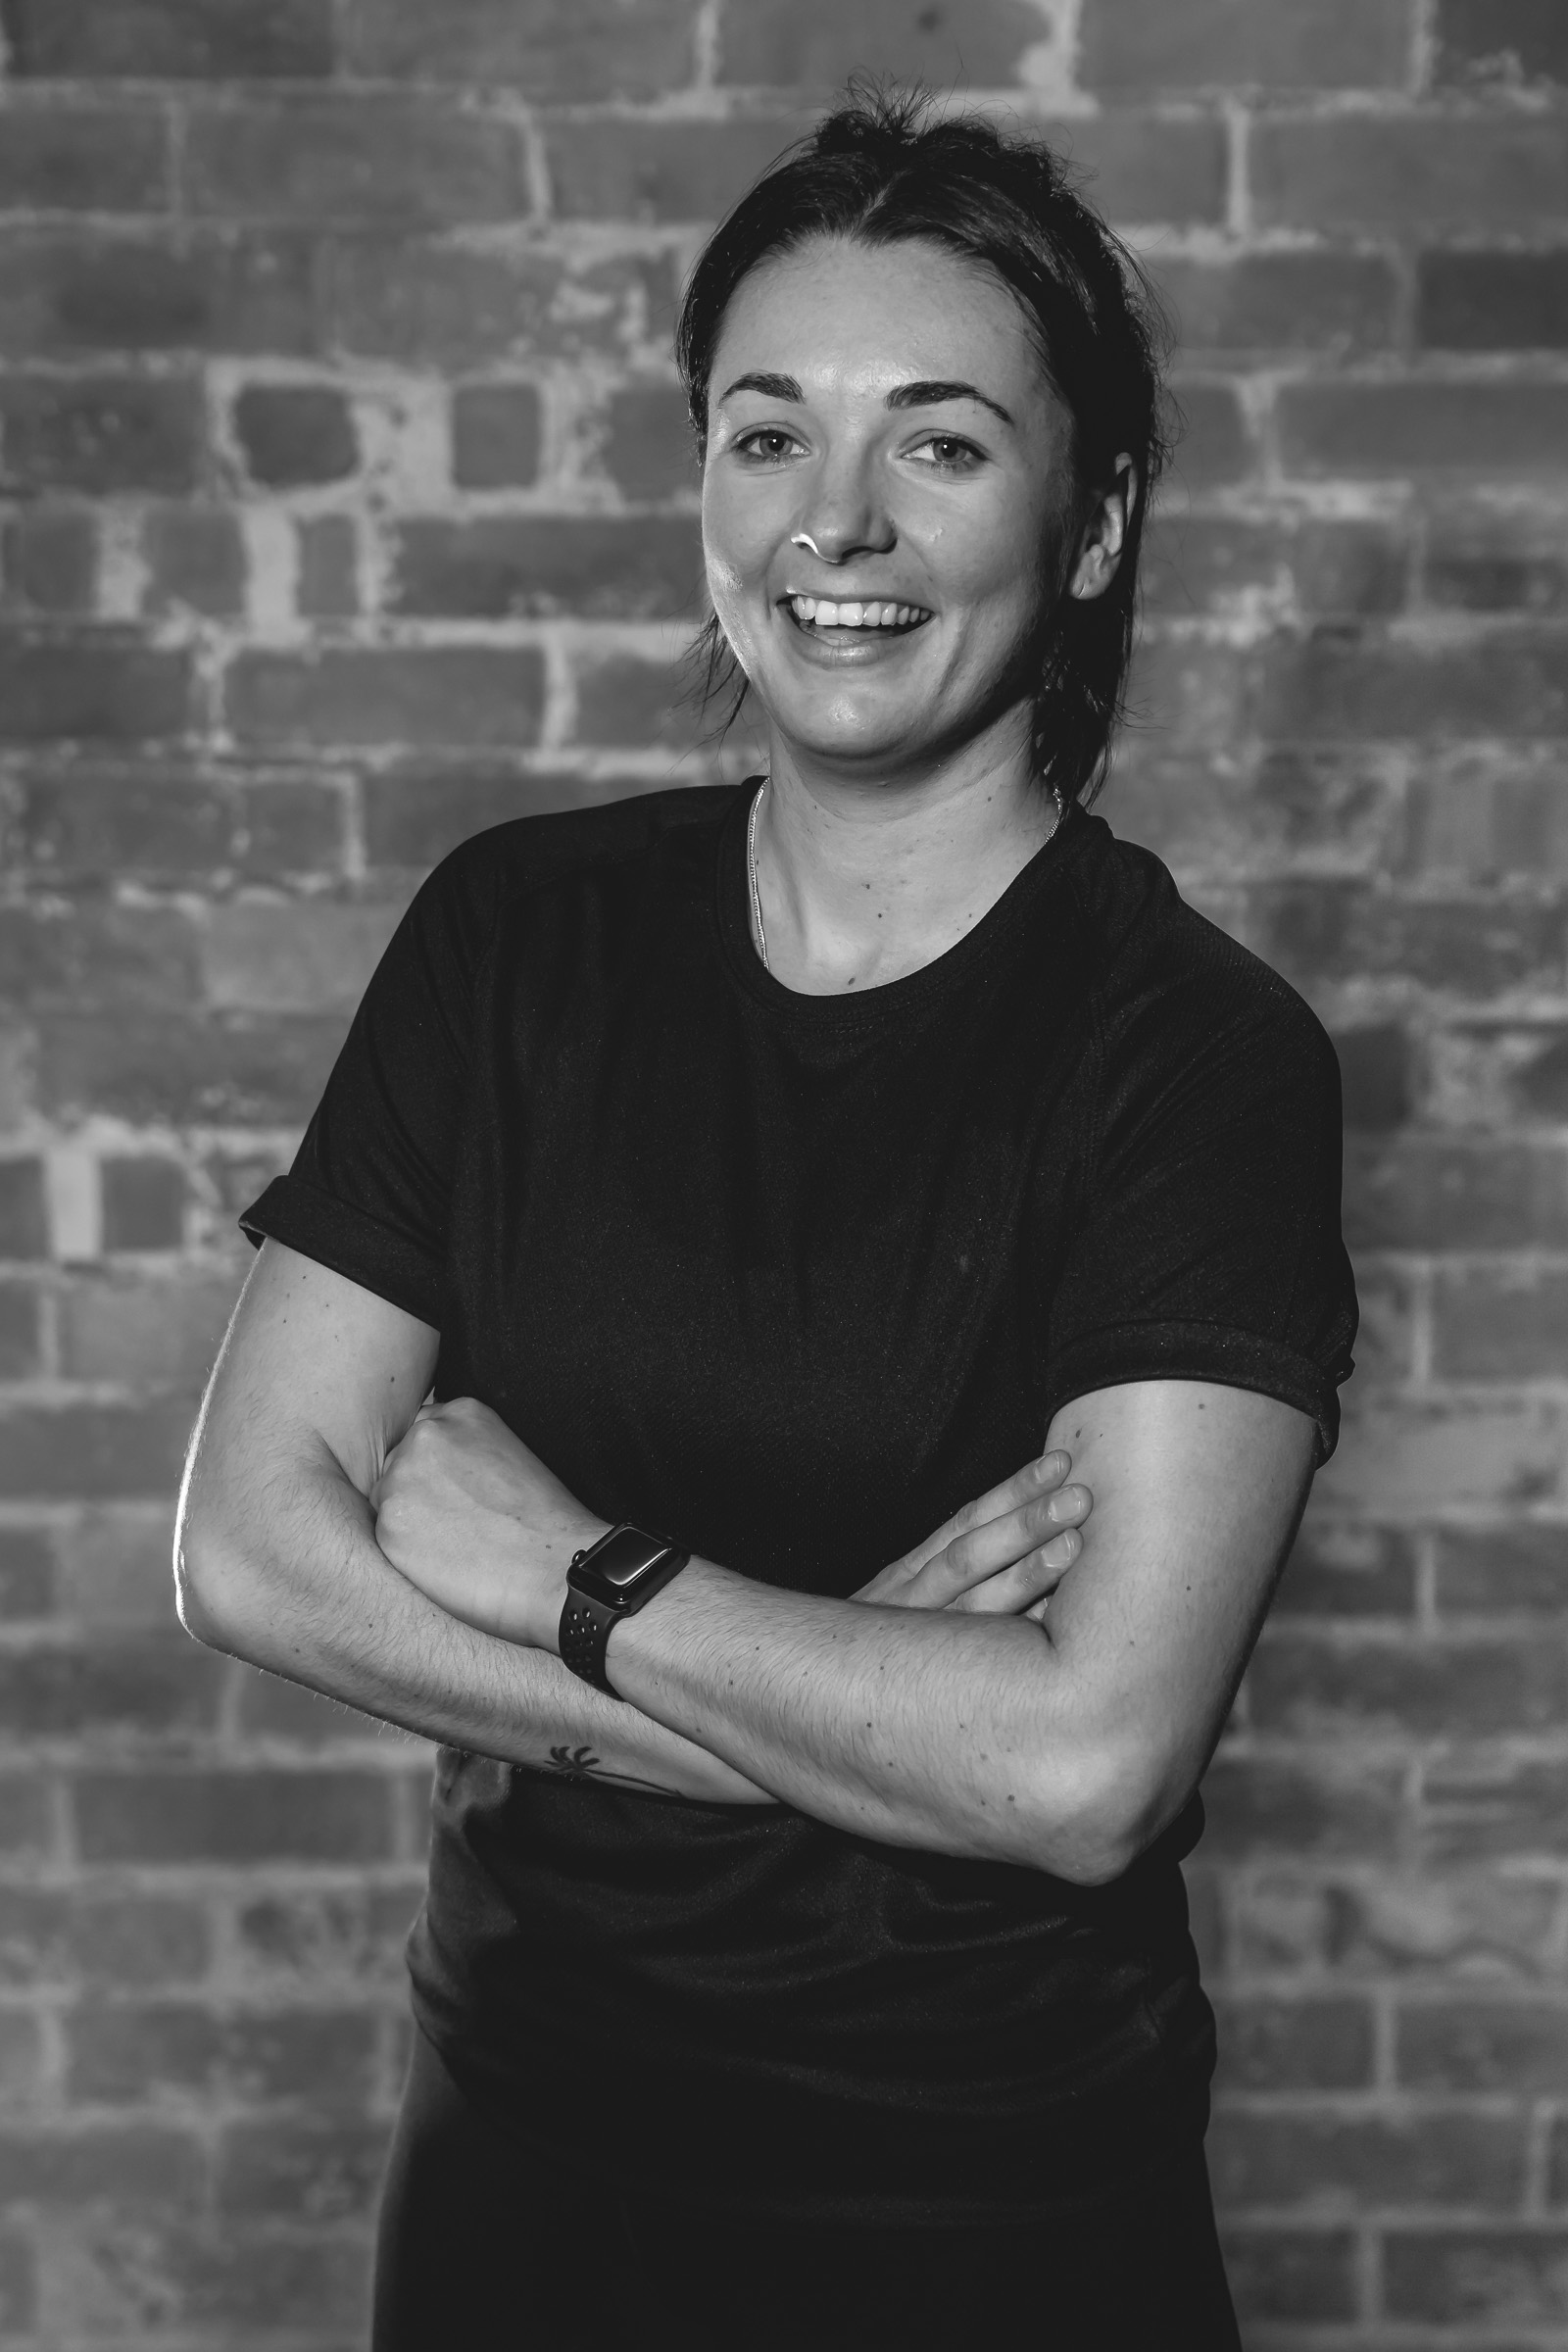 Hetty's  sport and fitness has been a huge part of her life from a young age, being former full time athlete and now coach, Hetty knows what it takes to get the best out of your workout.  She brings high energy , fun and passion through her upbeat music and strong teaching style. She will push you to your limits without you realising.  Her music style will take you through the RIDE in style with trance and heavy bass to drive you to that finish line.  Come sweat with Het and smash your fitness goals!